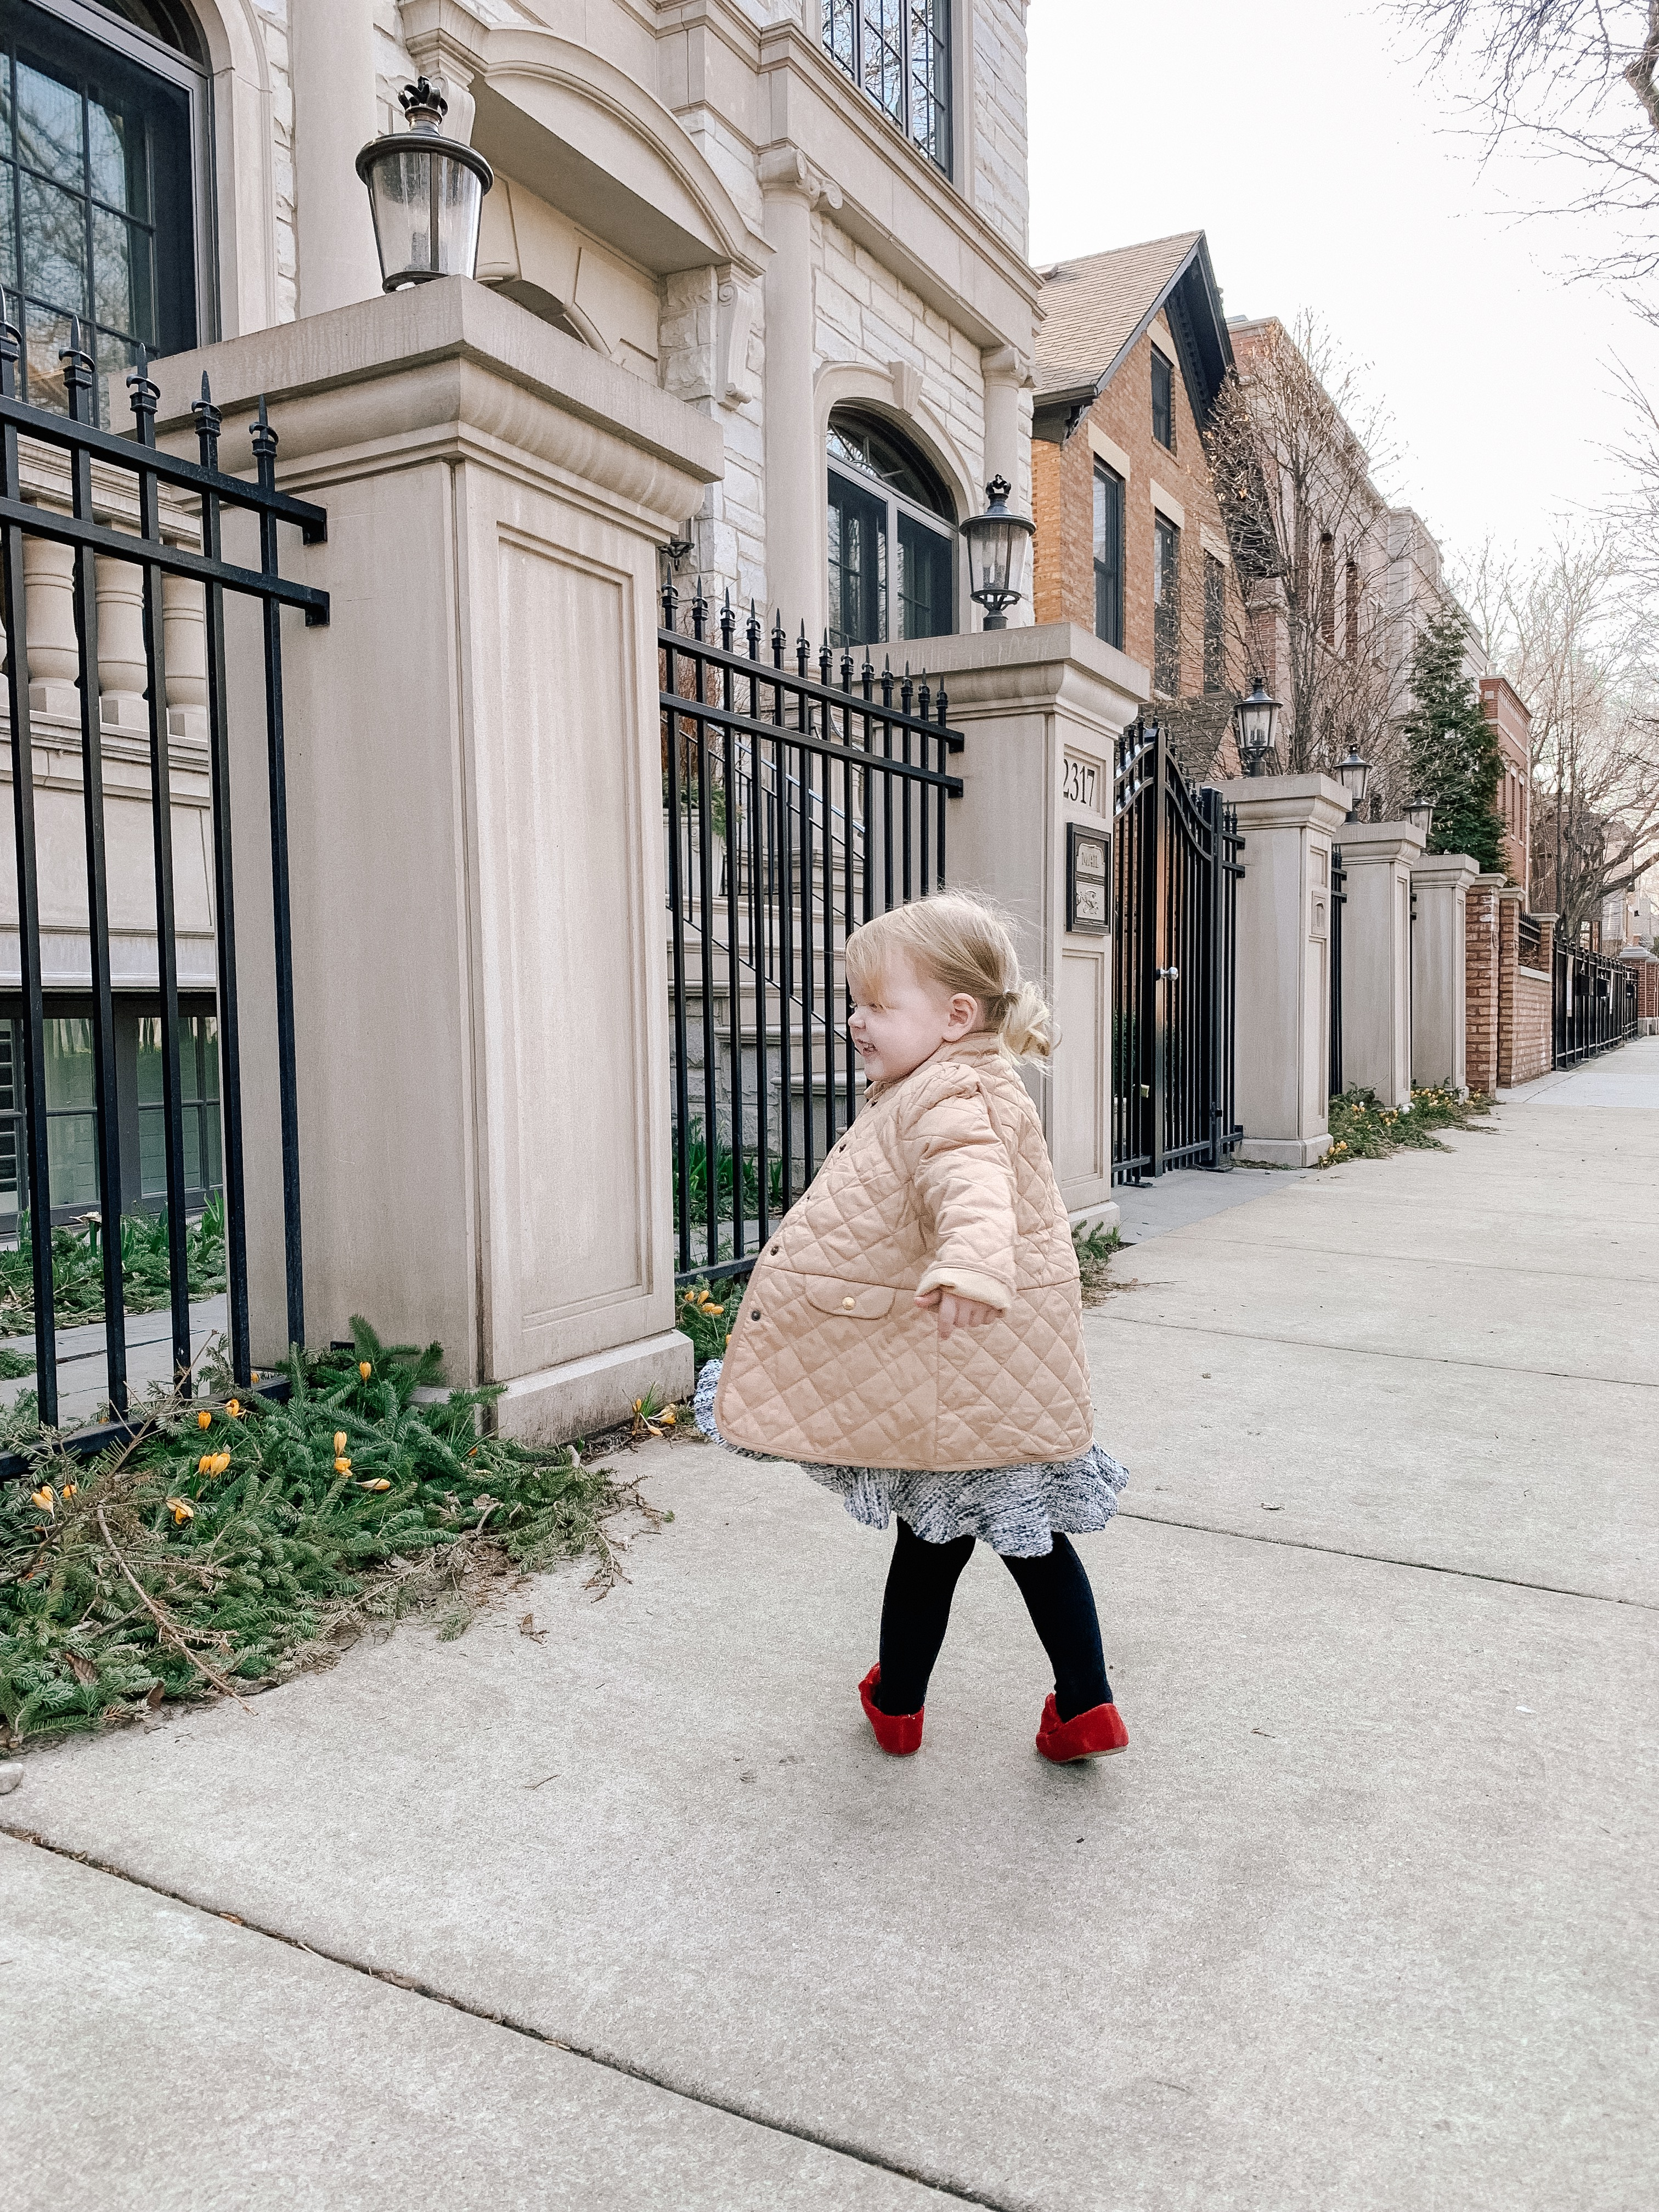 Emma Larkin is featuring a Preppy Toddler Outfit